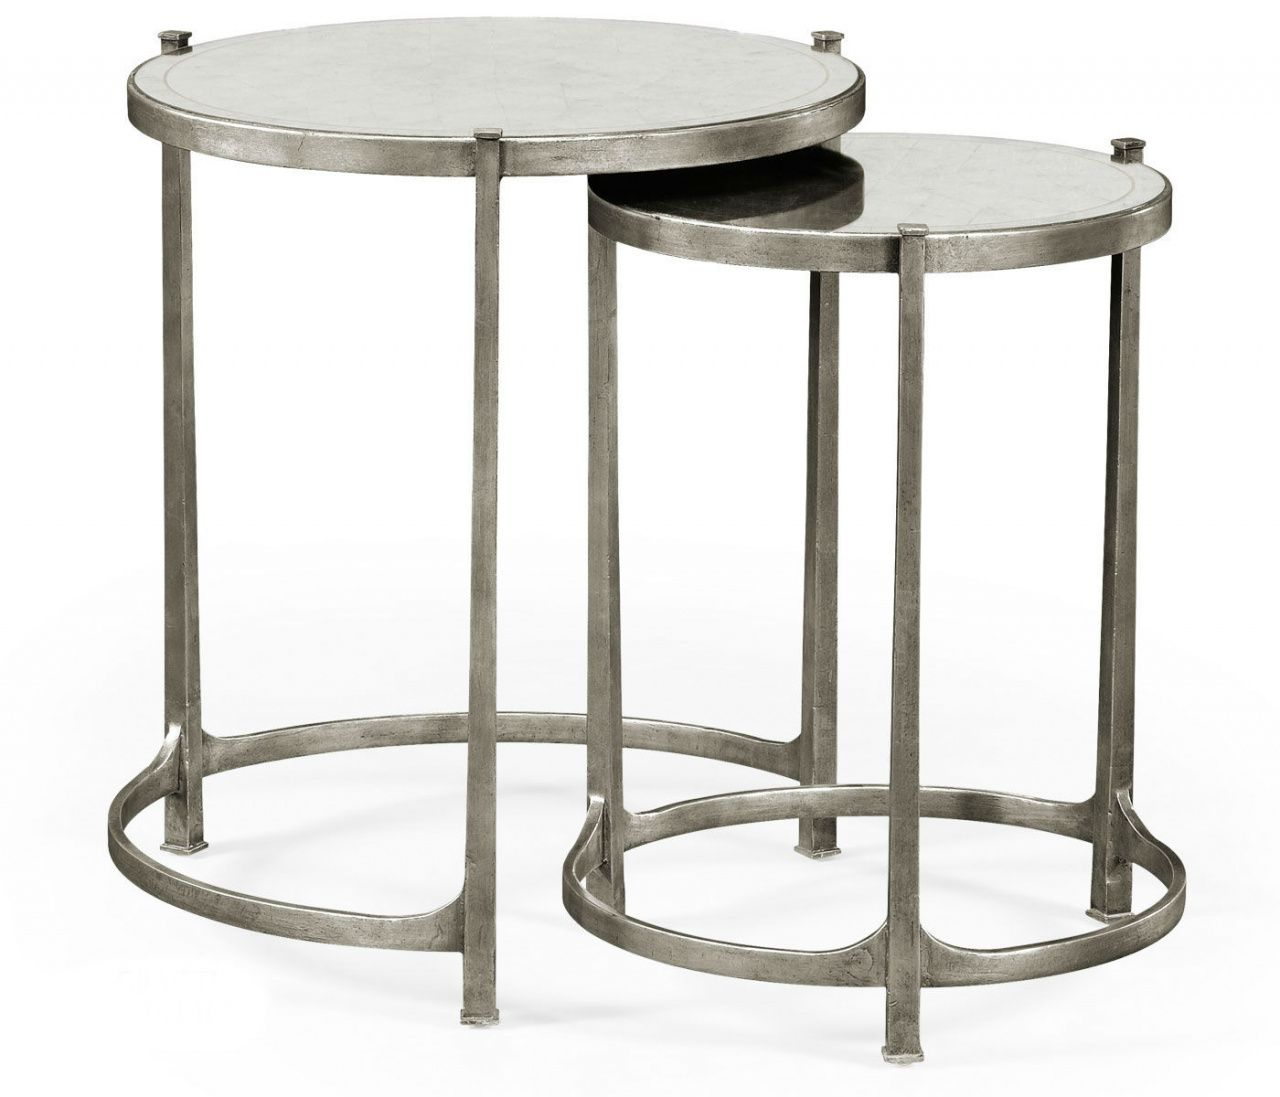 Attrayant Small Silver Side Table   Home Office Furniture Sets Check More At Http://